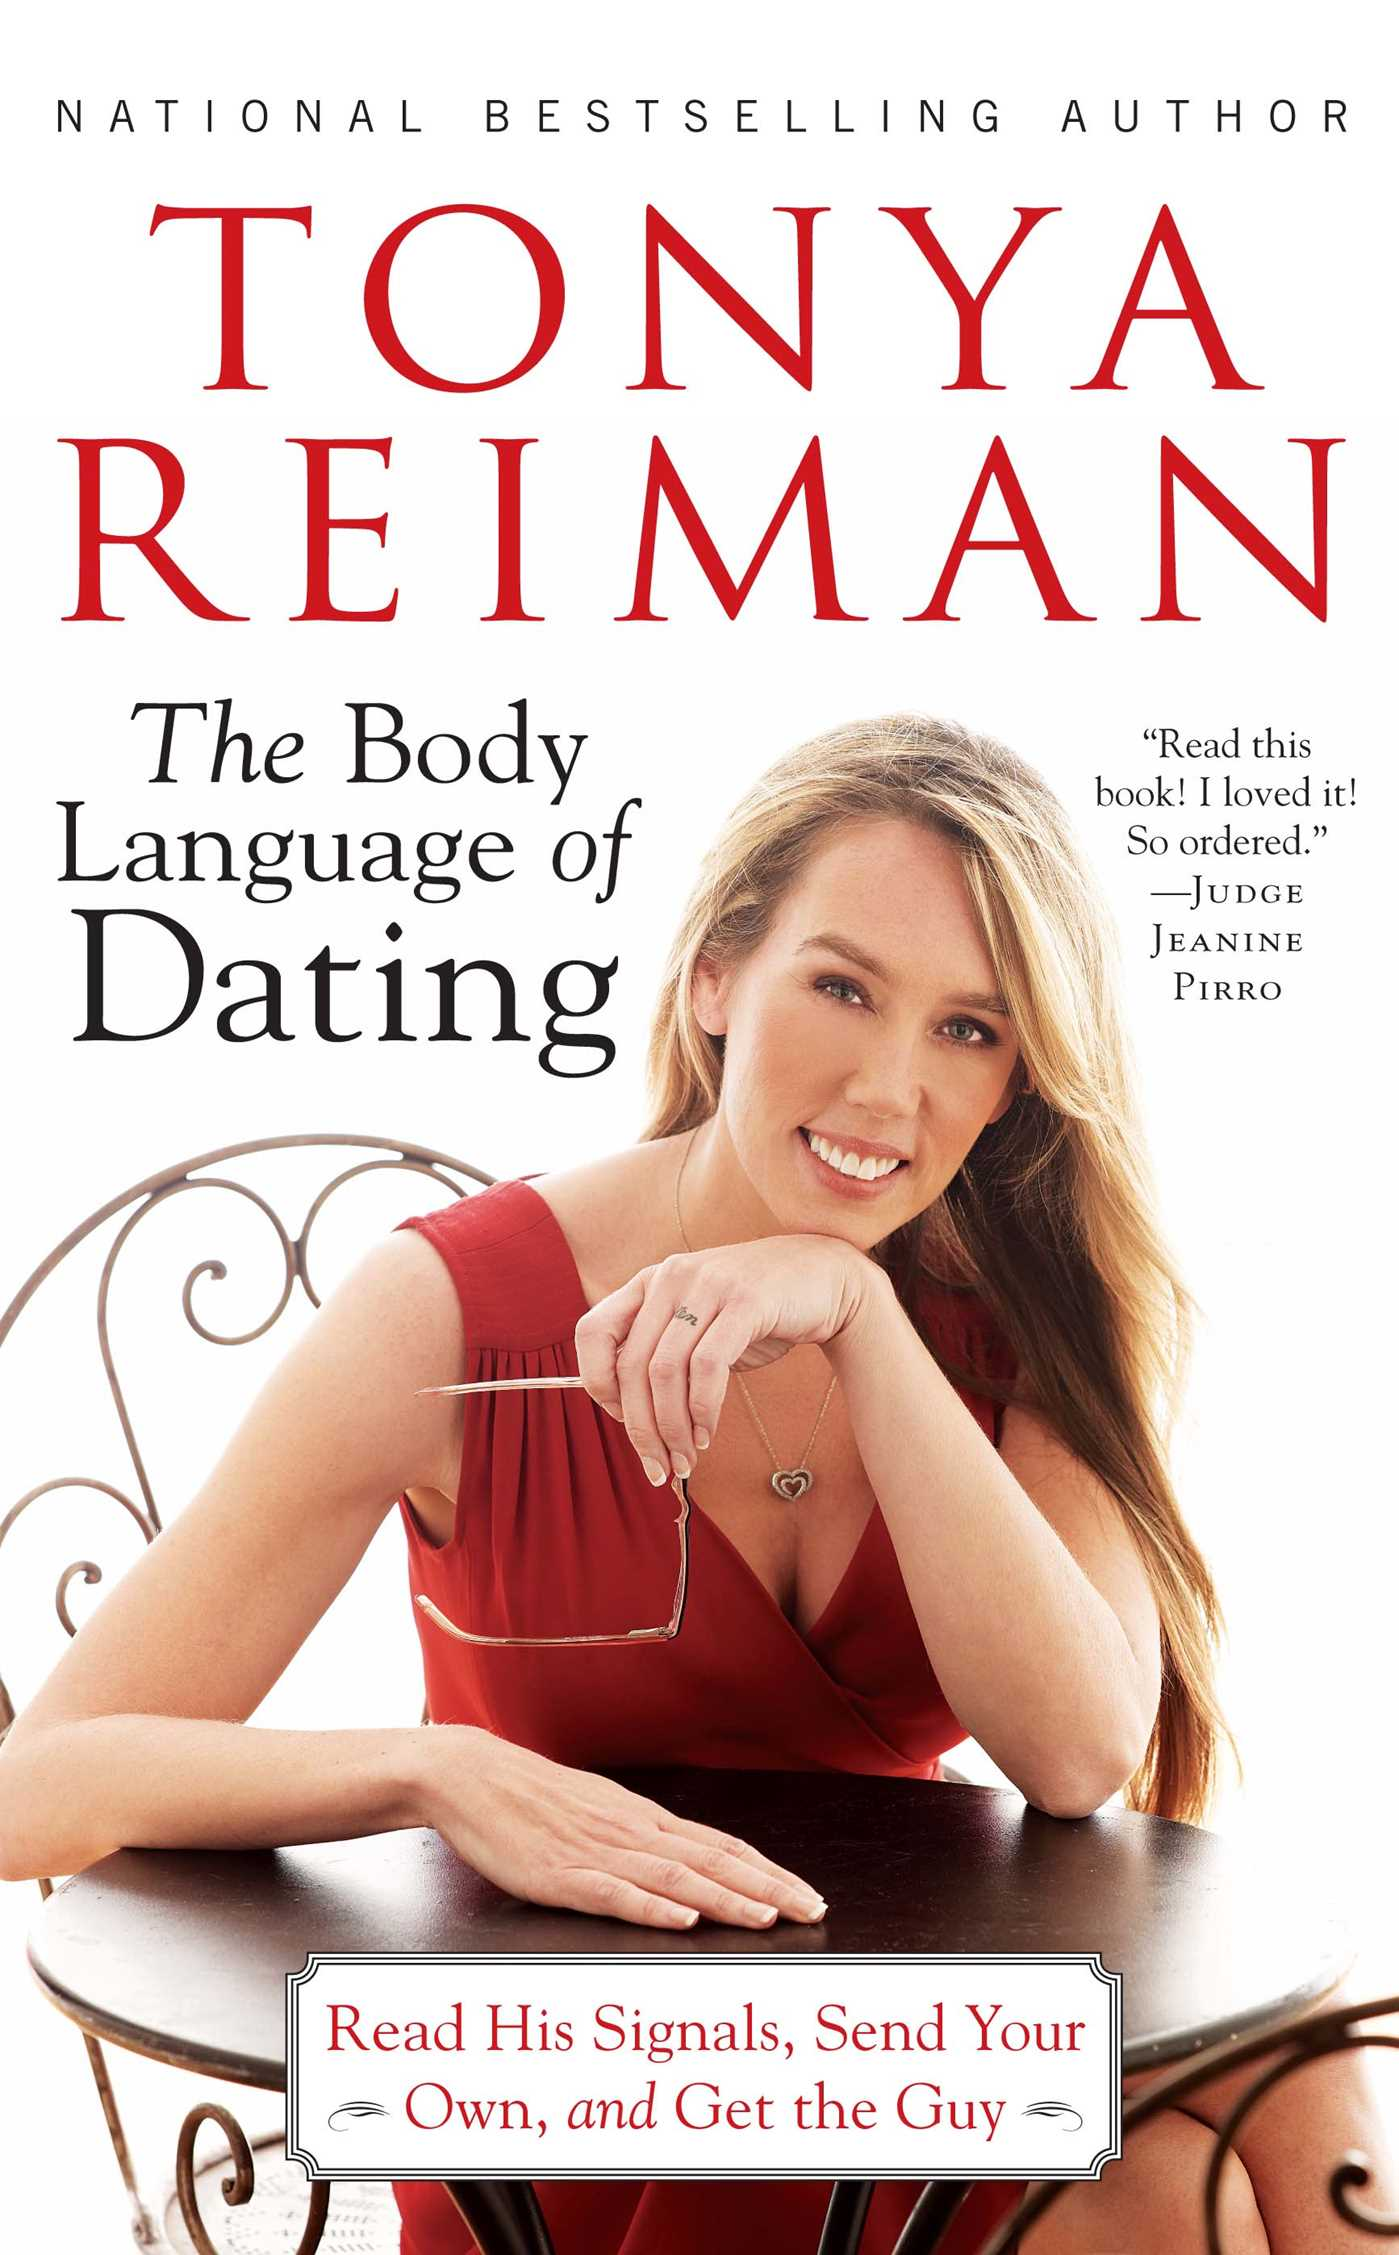 The body language of dating 9781451624366 hr